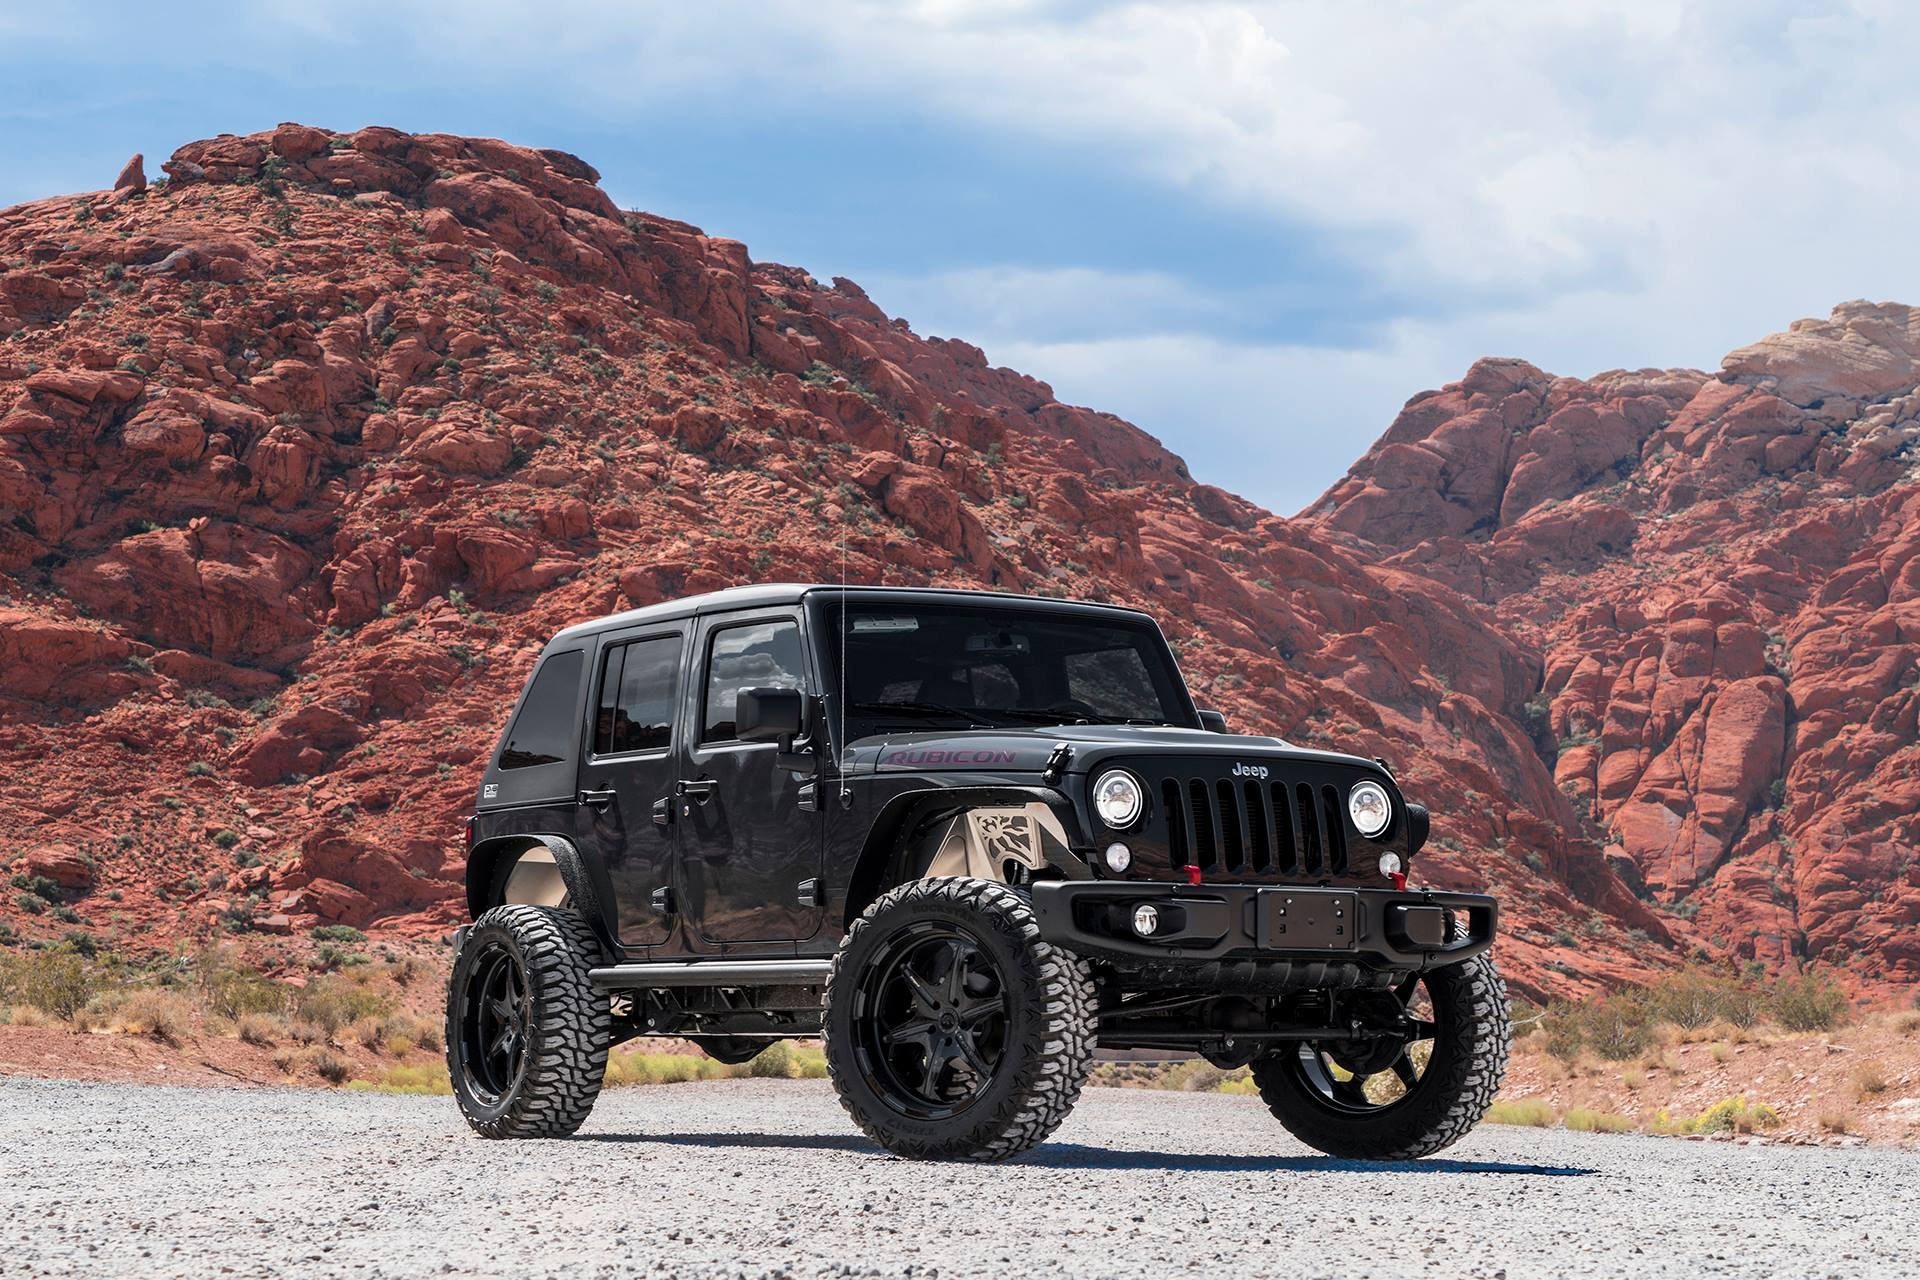 All Black Custom Jeep Wrangler Lifted And Fitted With Black Forgiato